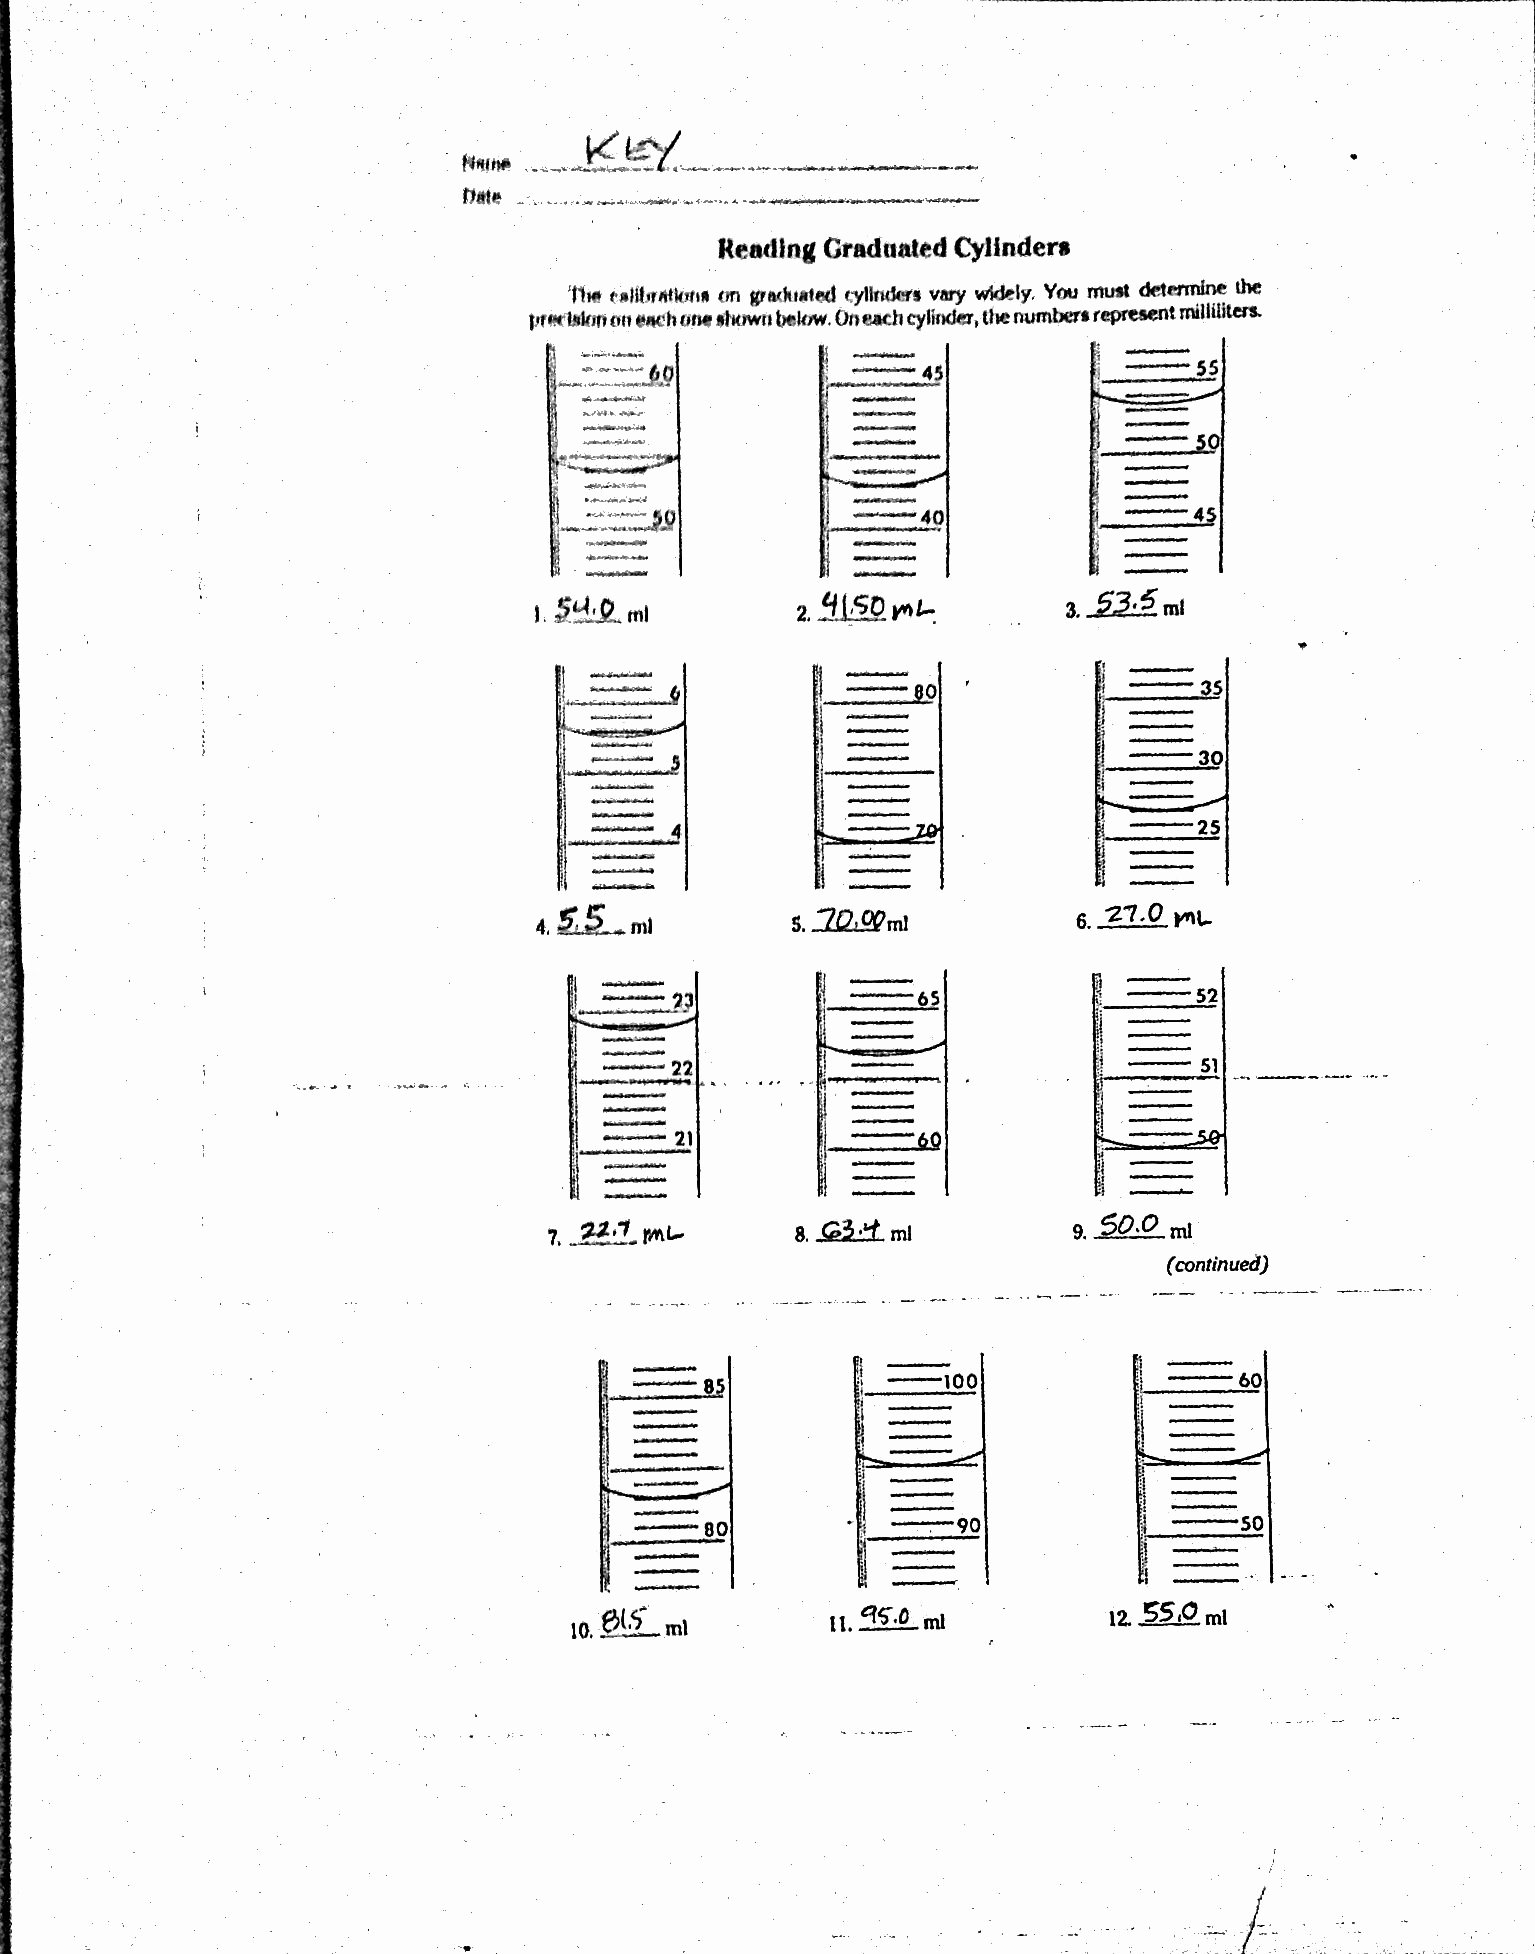 Triple Beam Balance Worksheet Beautiful Reading A Graduated Cylinder Worksheet